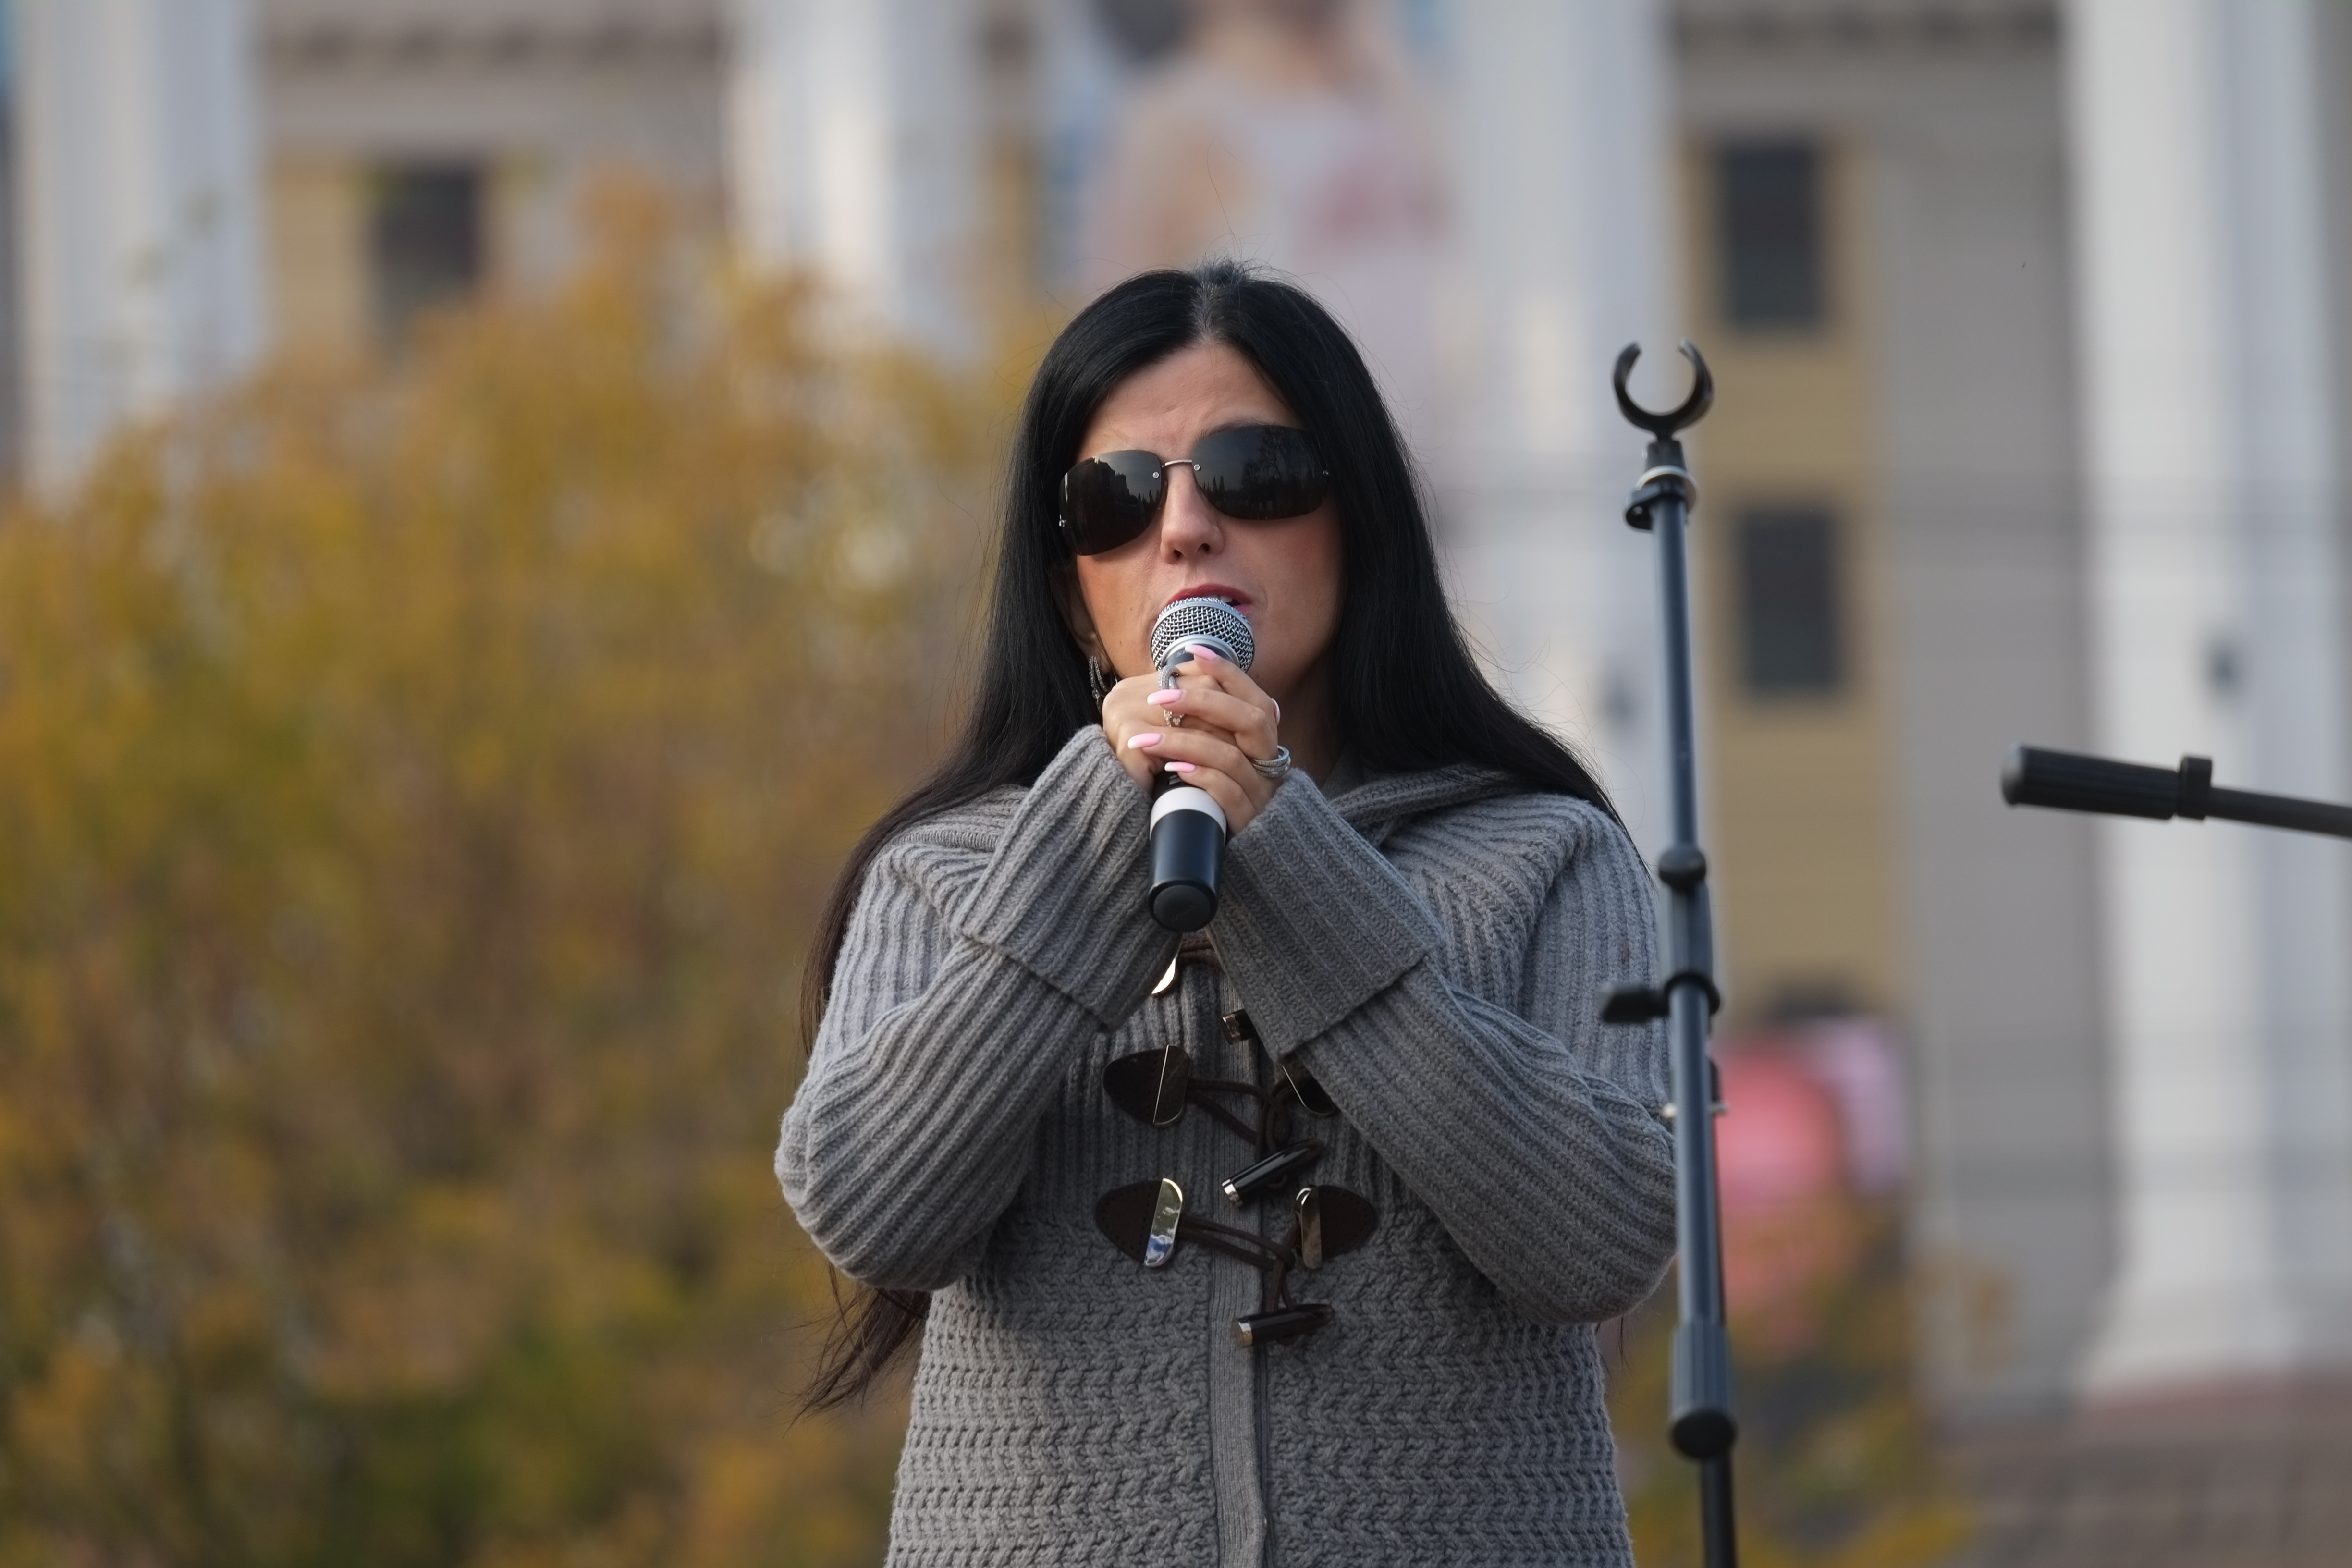 Diana Gurtskaya commented on information about the pregnancy 11/20/2013 44